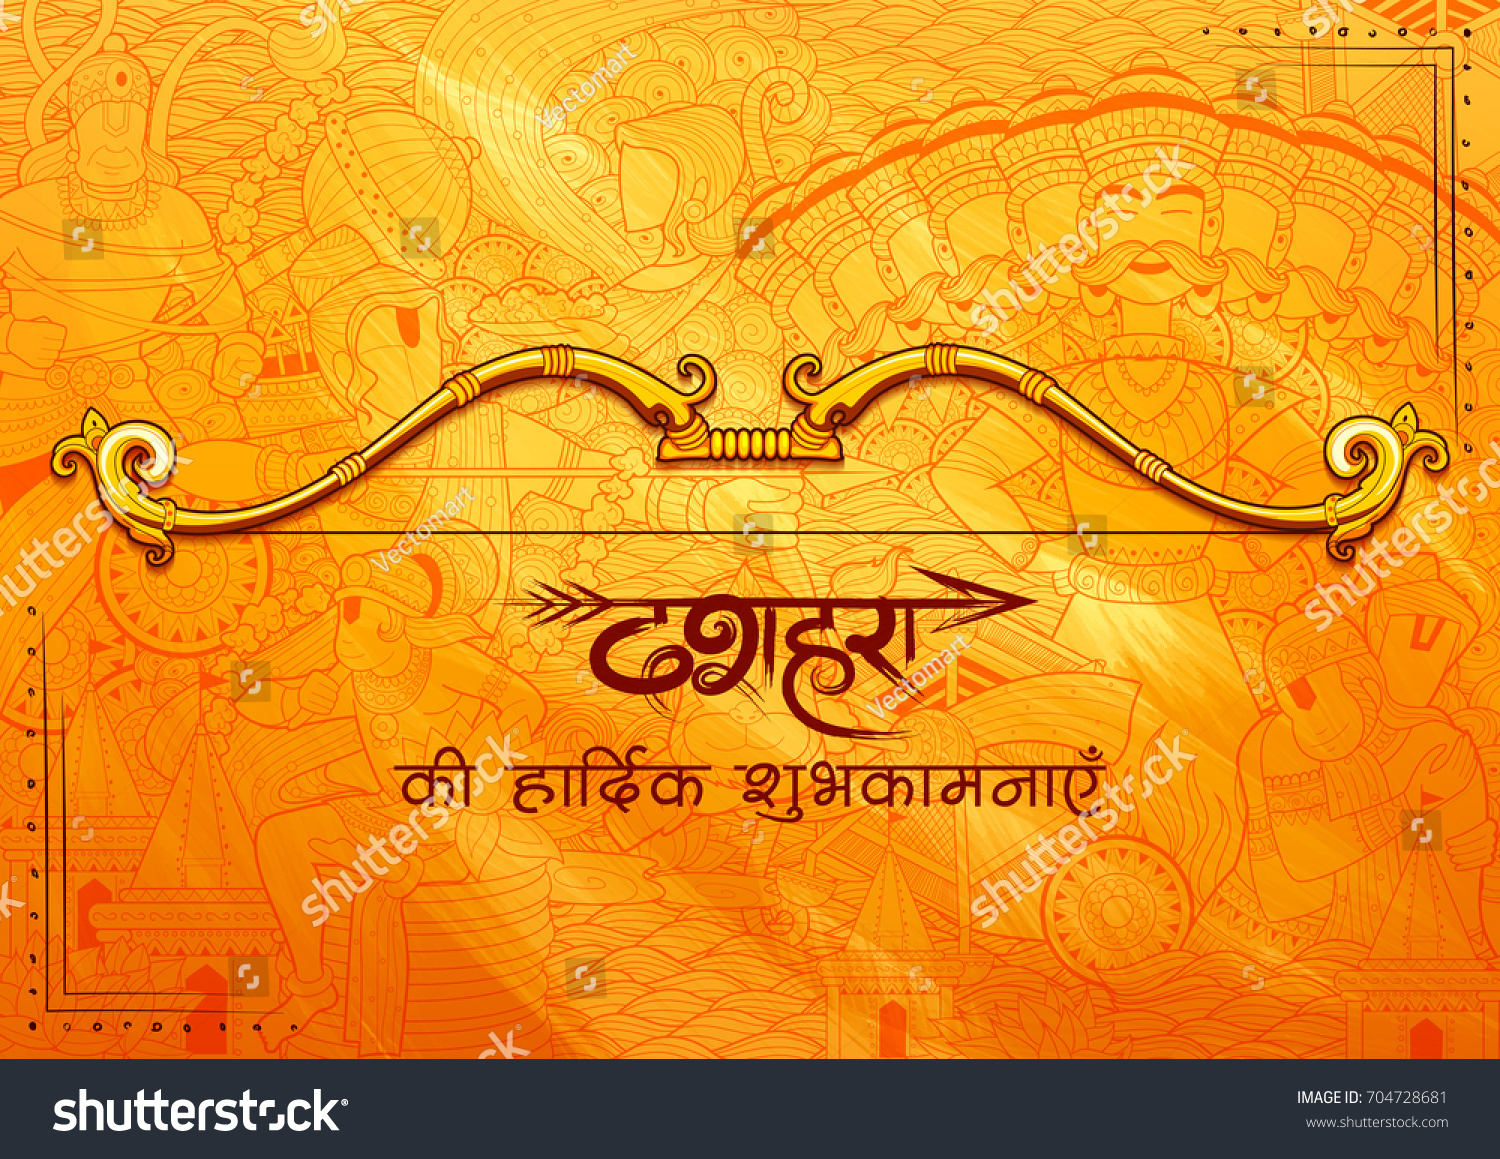 illustration of bow and arrow in Happy Dussehra festival of India background with Hindi text Dussehra #704728681